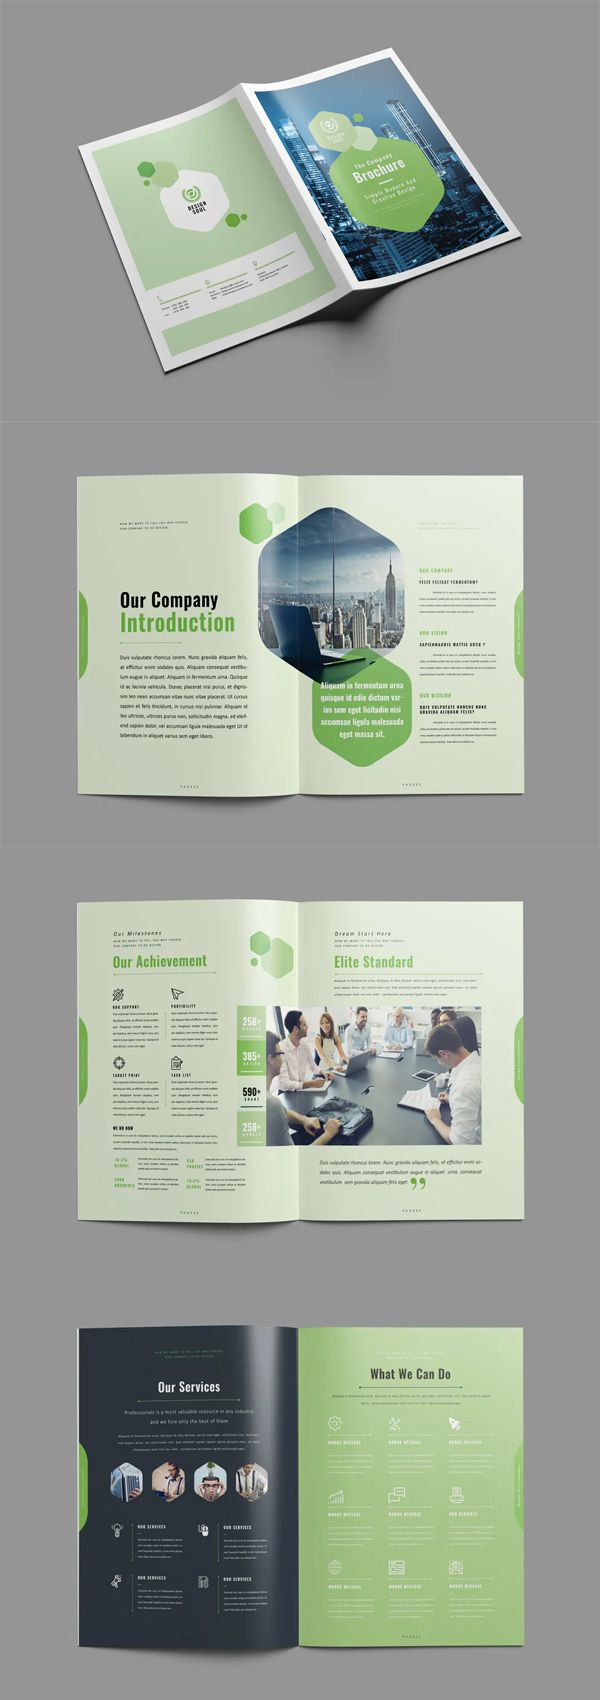 Clean and Creative Brochure Design INDD - 28 custom pages